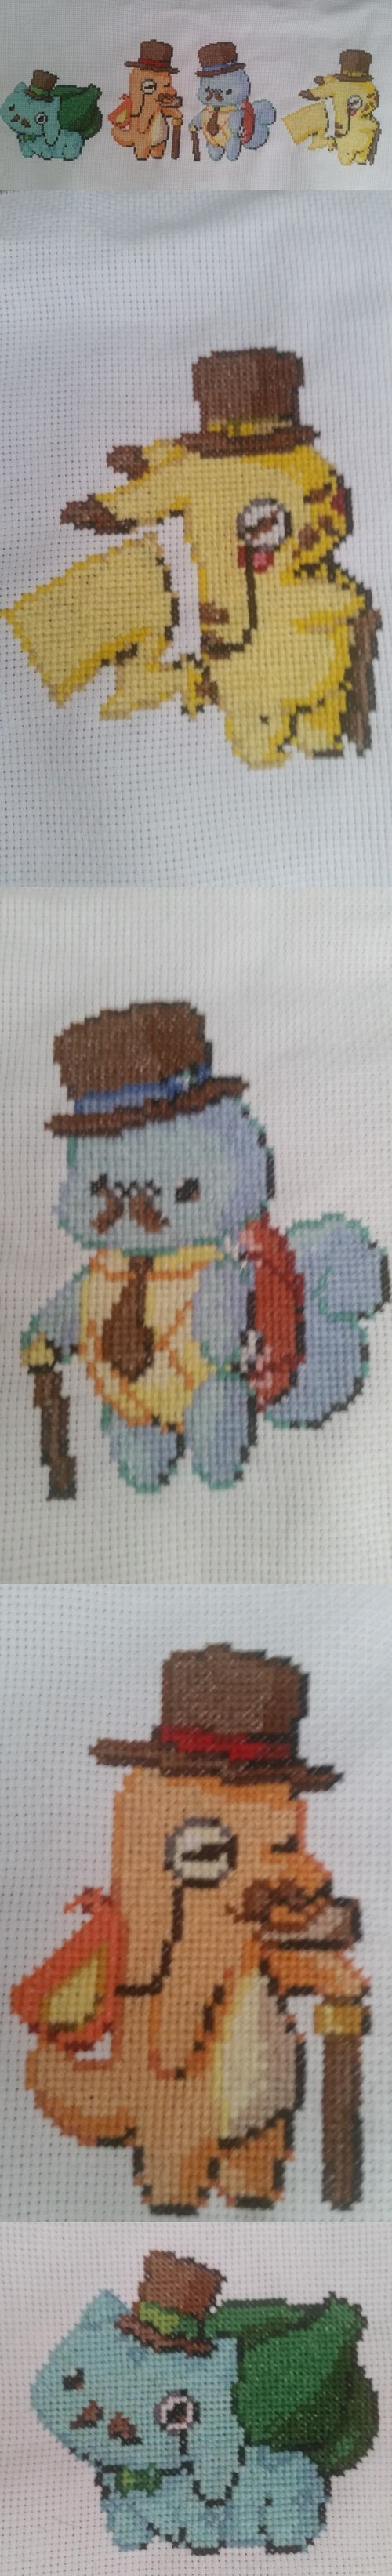 pokemon memes gentlemon cross stitch